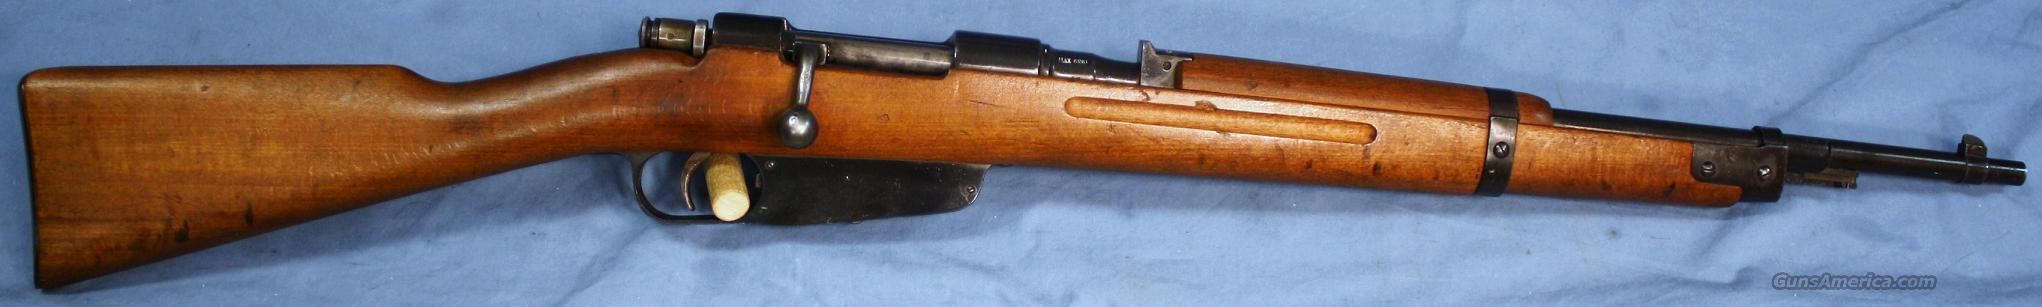 Carcano Model 38 Italian Bolt Action Rifle 7.35mm  Guns > Rifles > Military Misc. Rifles Non-US > Other